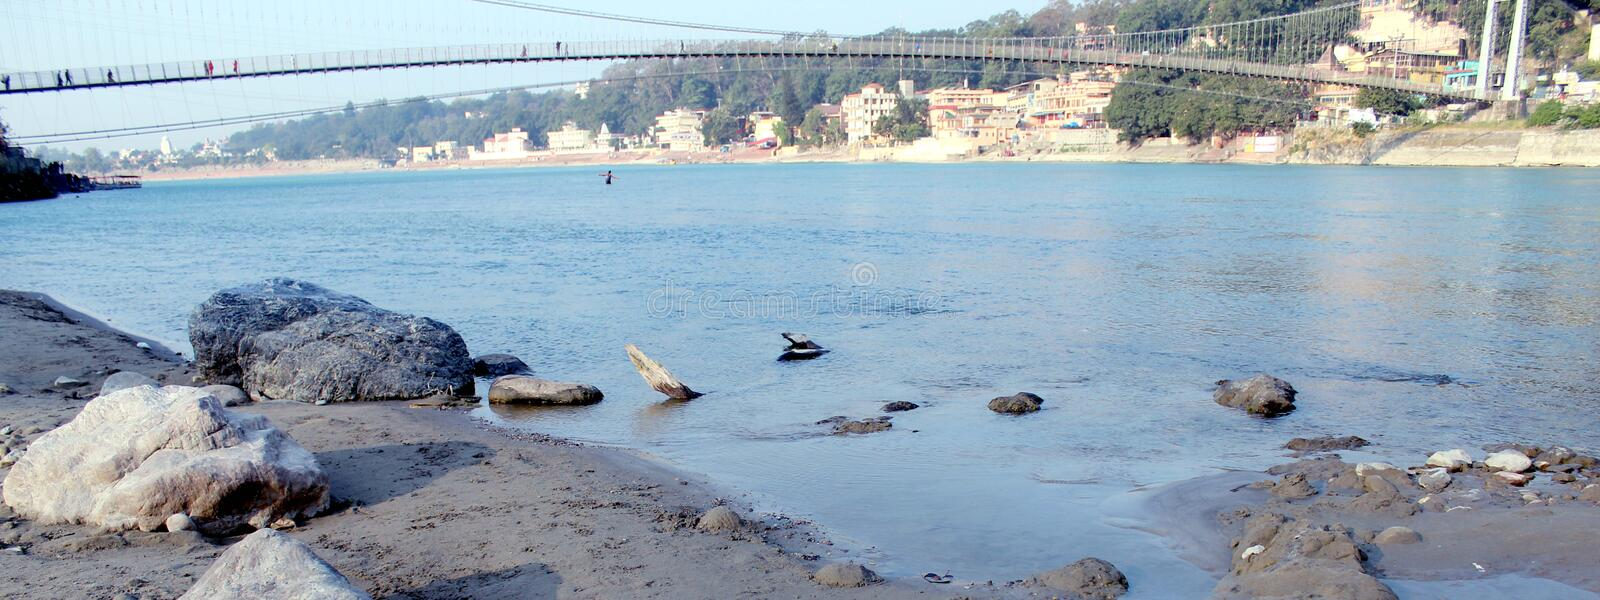 Natural Image. Rishikesh. Rishikesh, a most tranquil place in northern Uttarakhand, surrounded by hills and bisected by the wide and sluggish Ganges, is often royalty free stock images